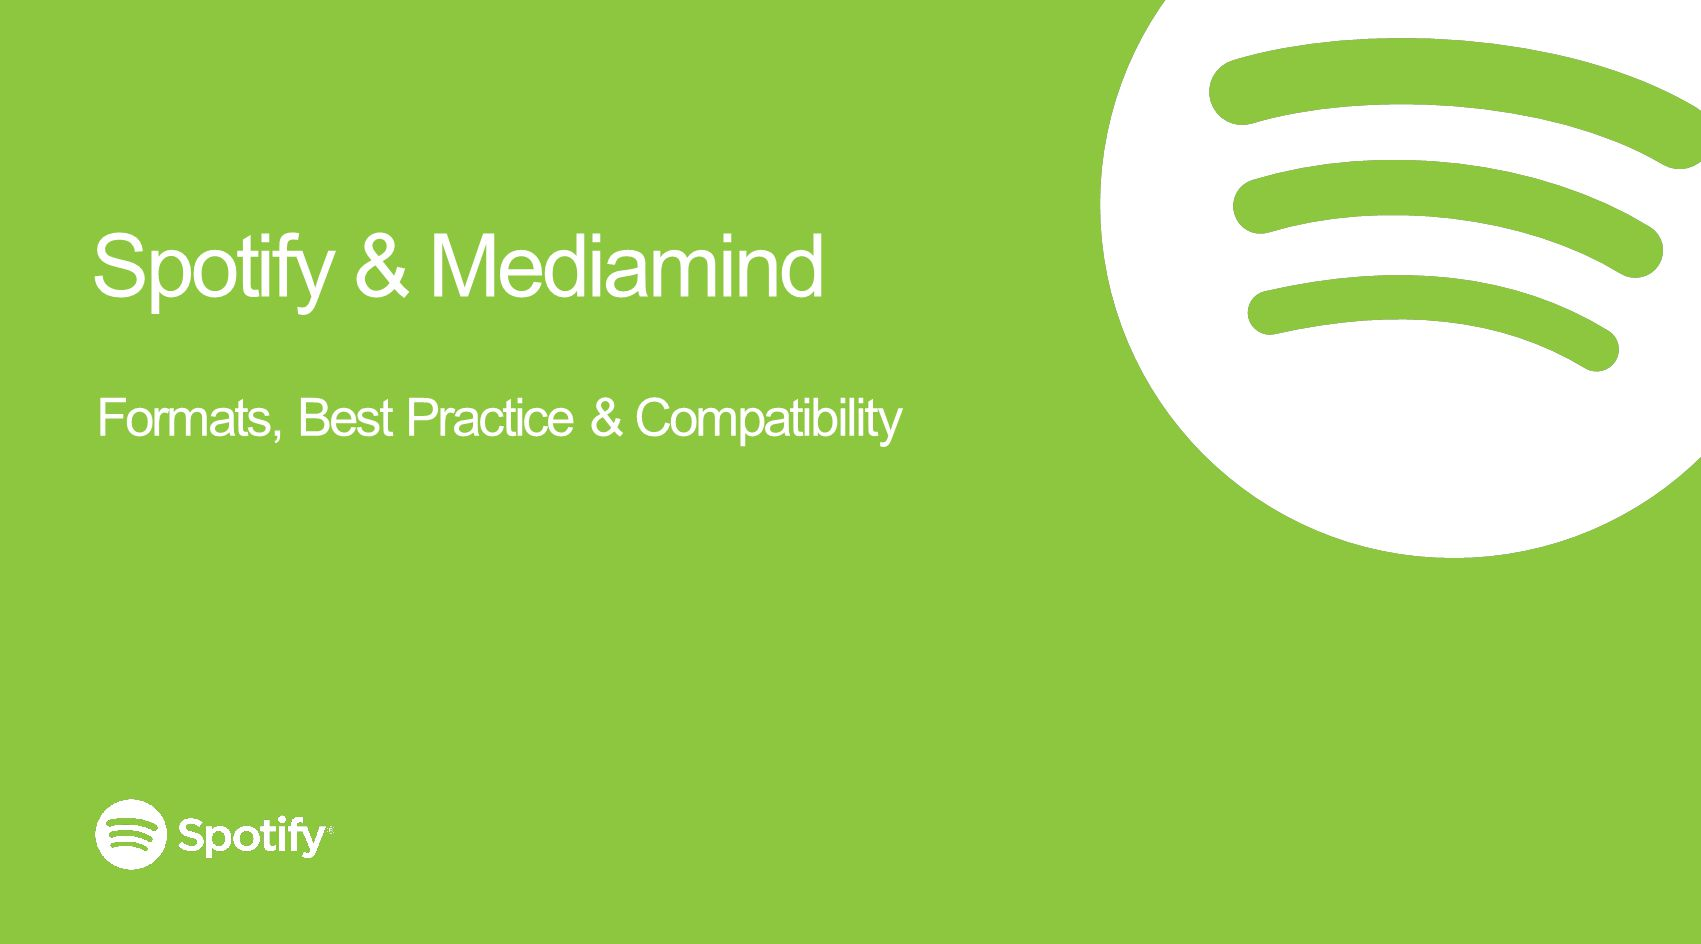 Spotify & Mediamind Formats, Best Practice & Compatibility